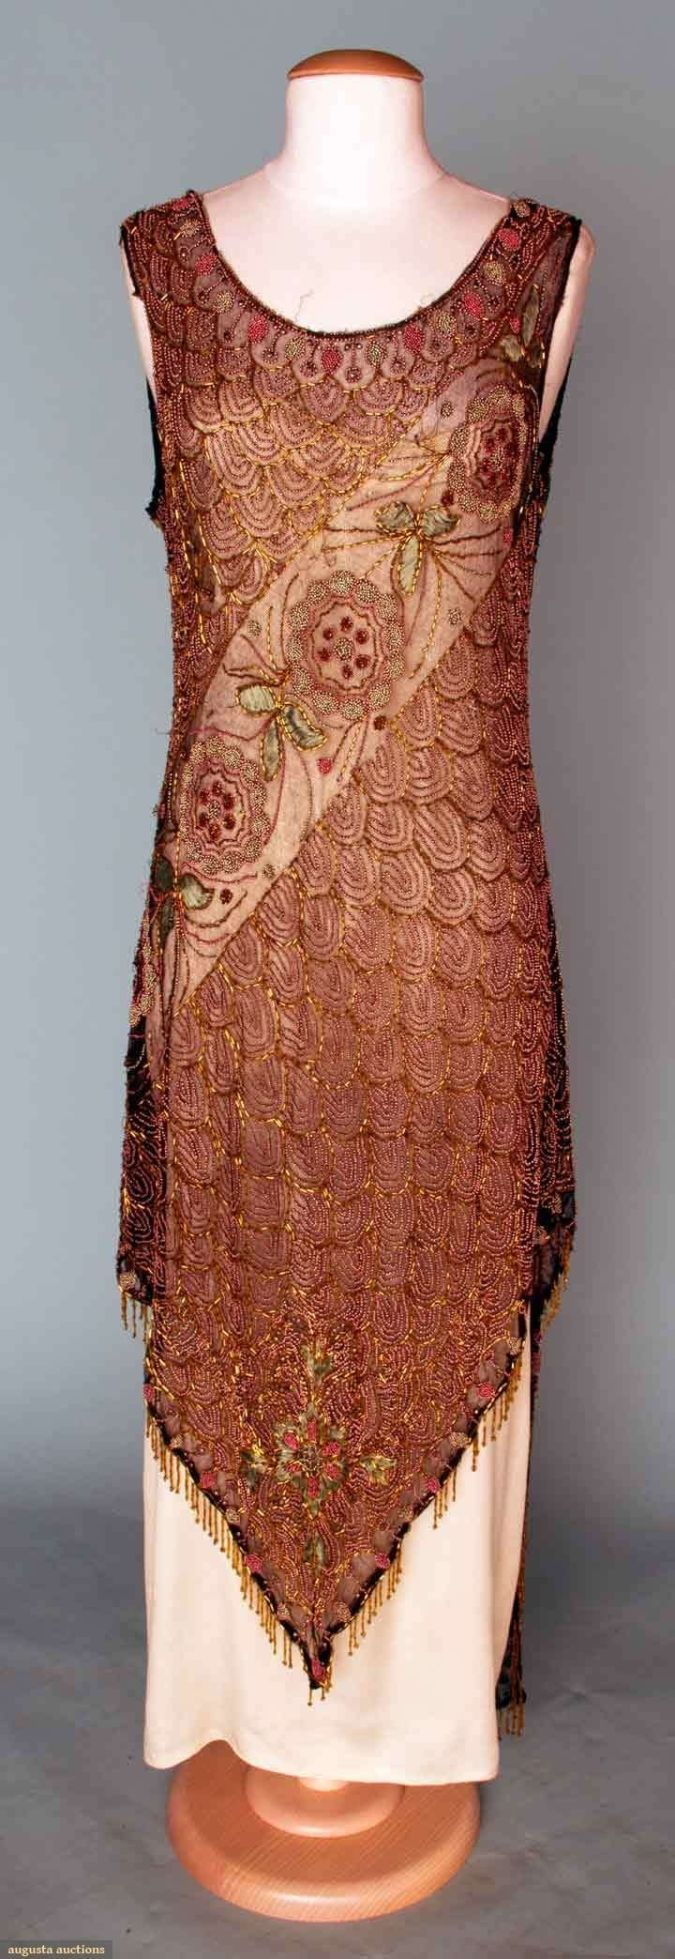 1920s Party Dress